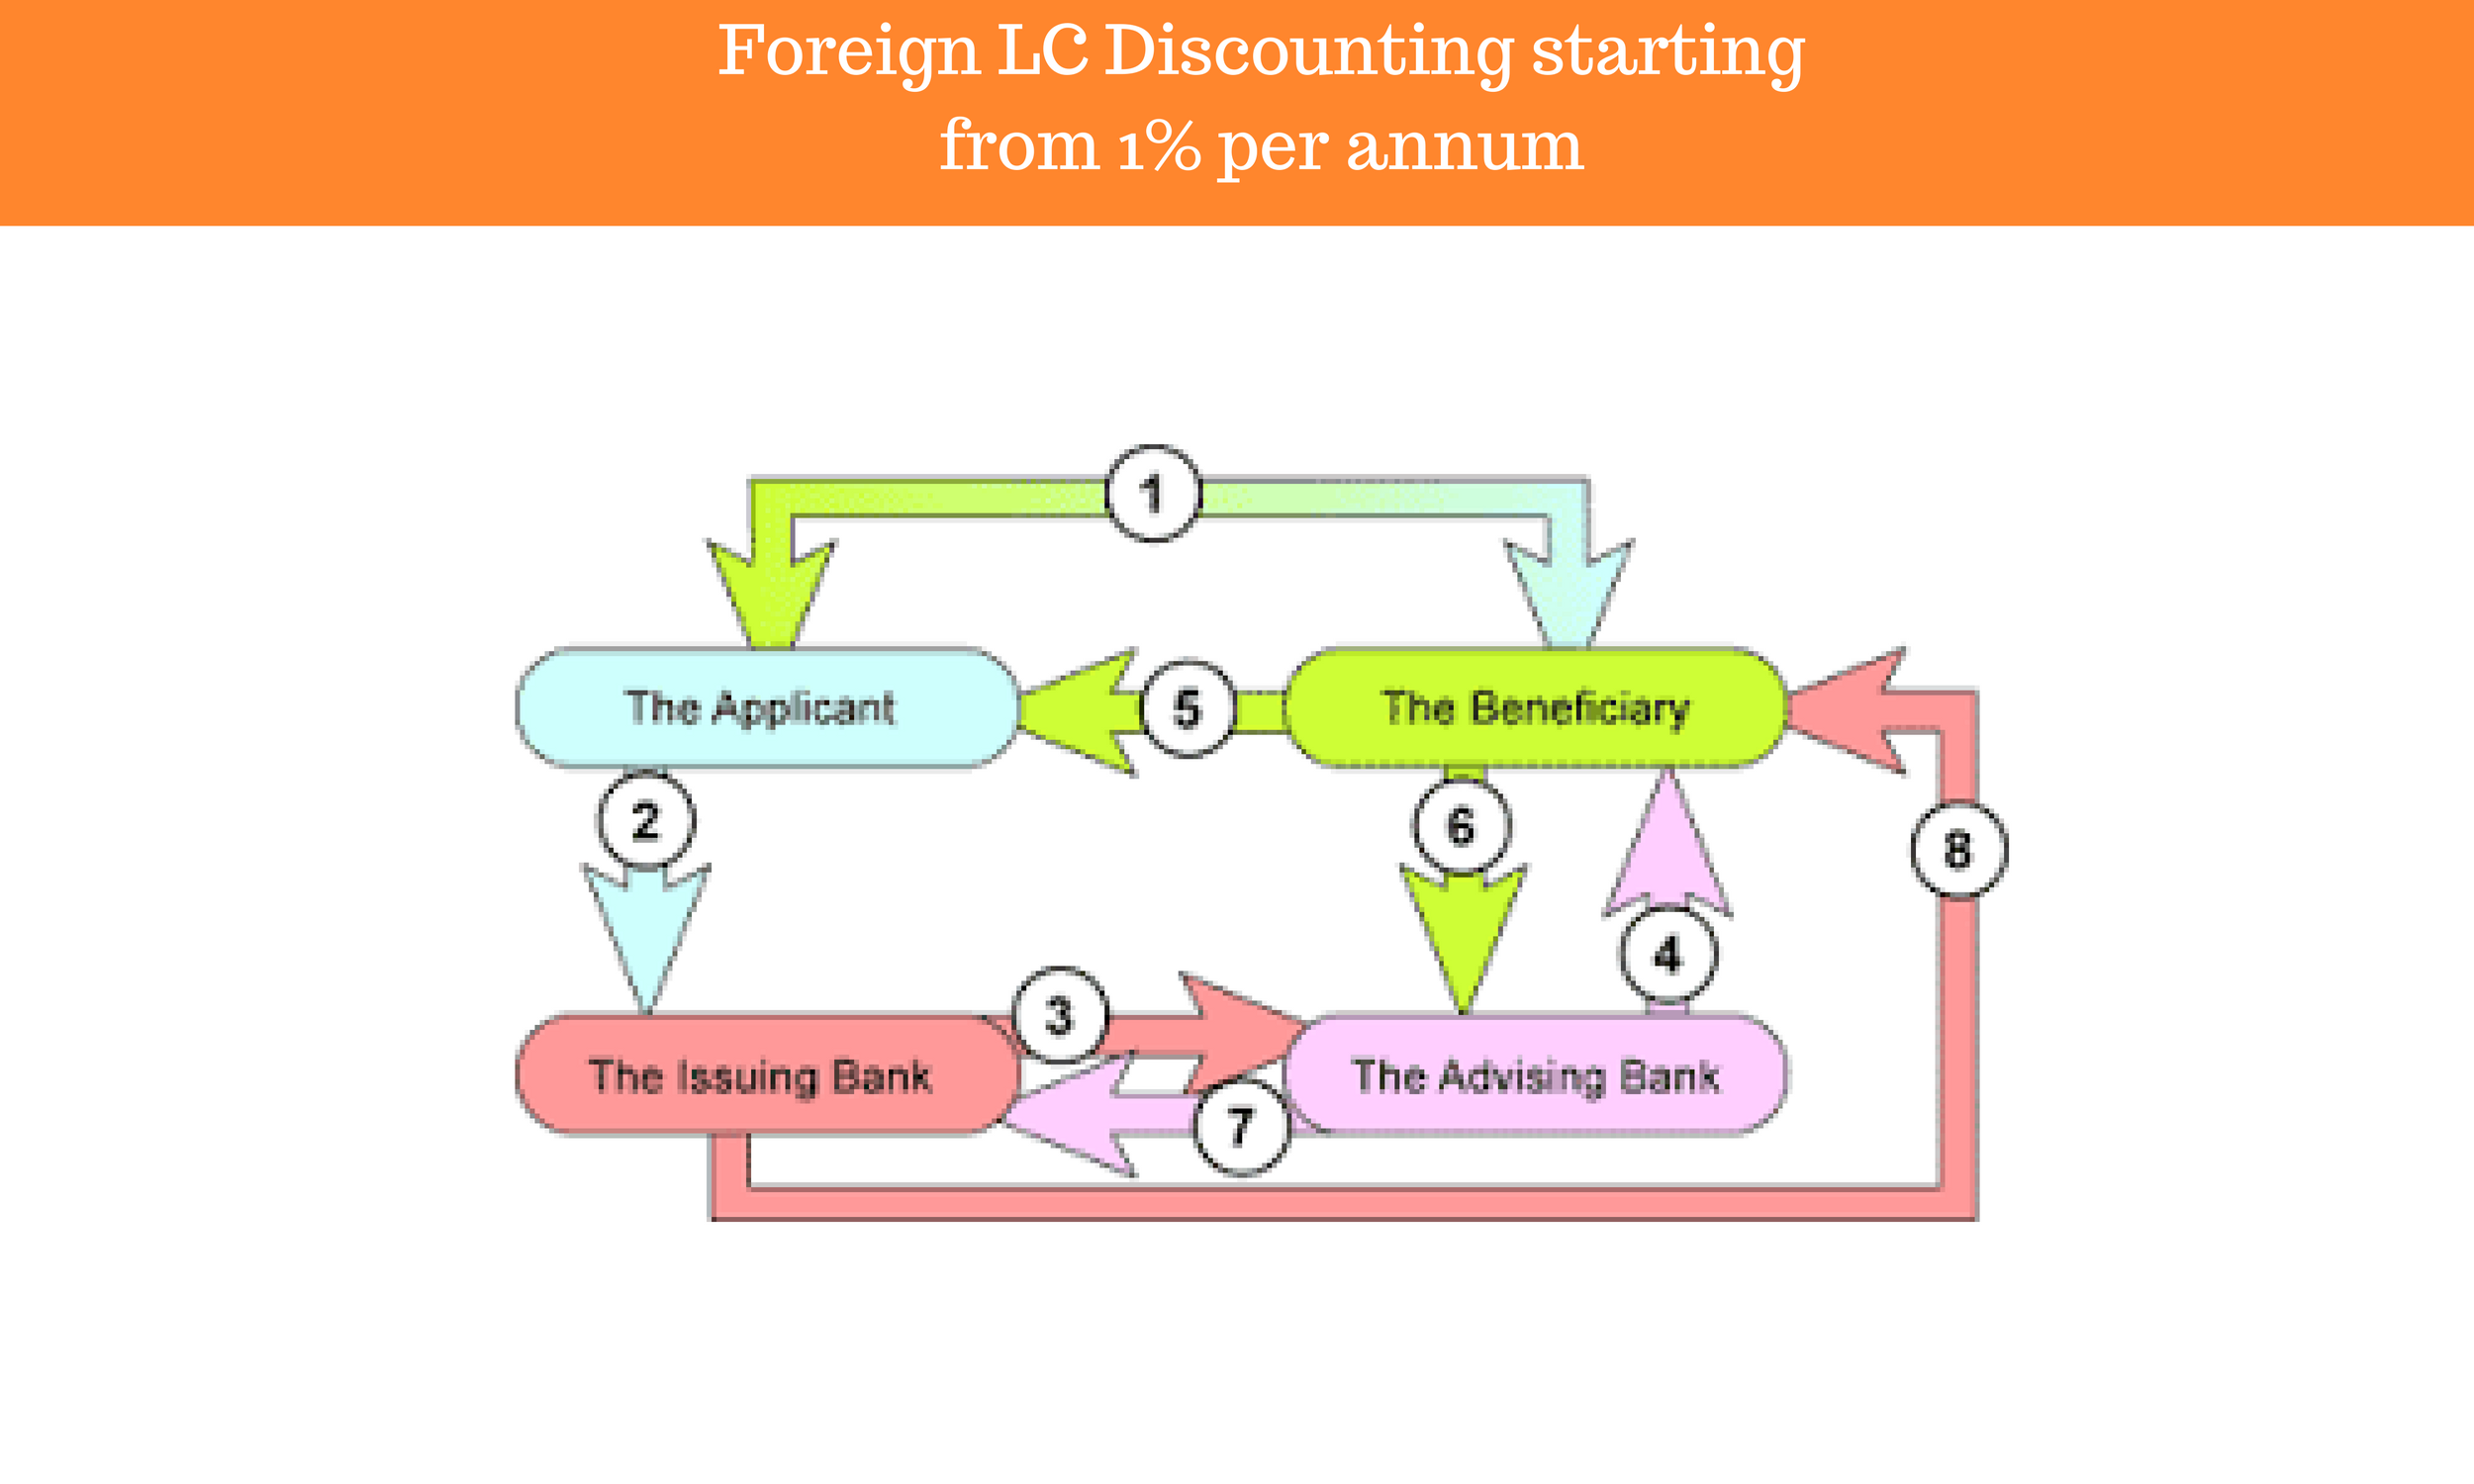 Foreign LC Discounting starting from 1% per annum